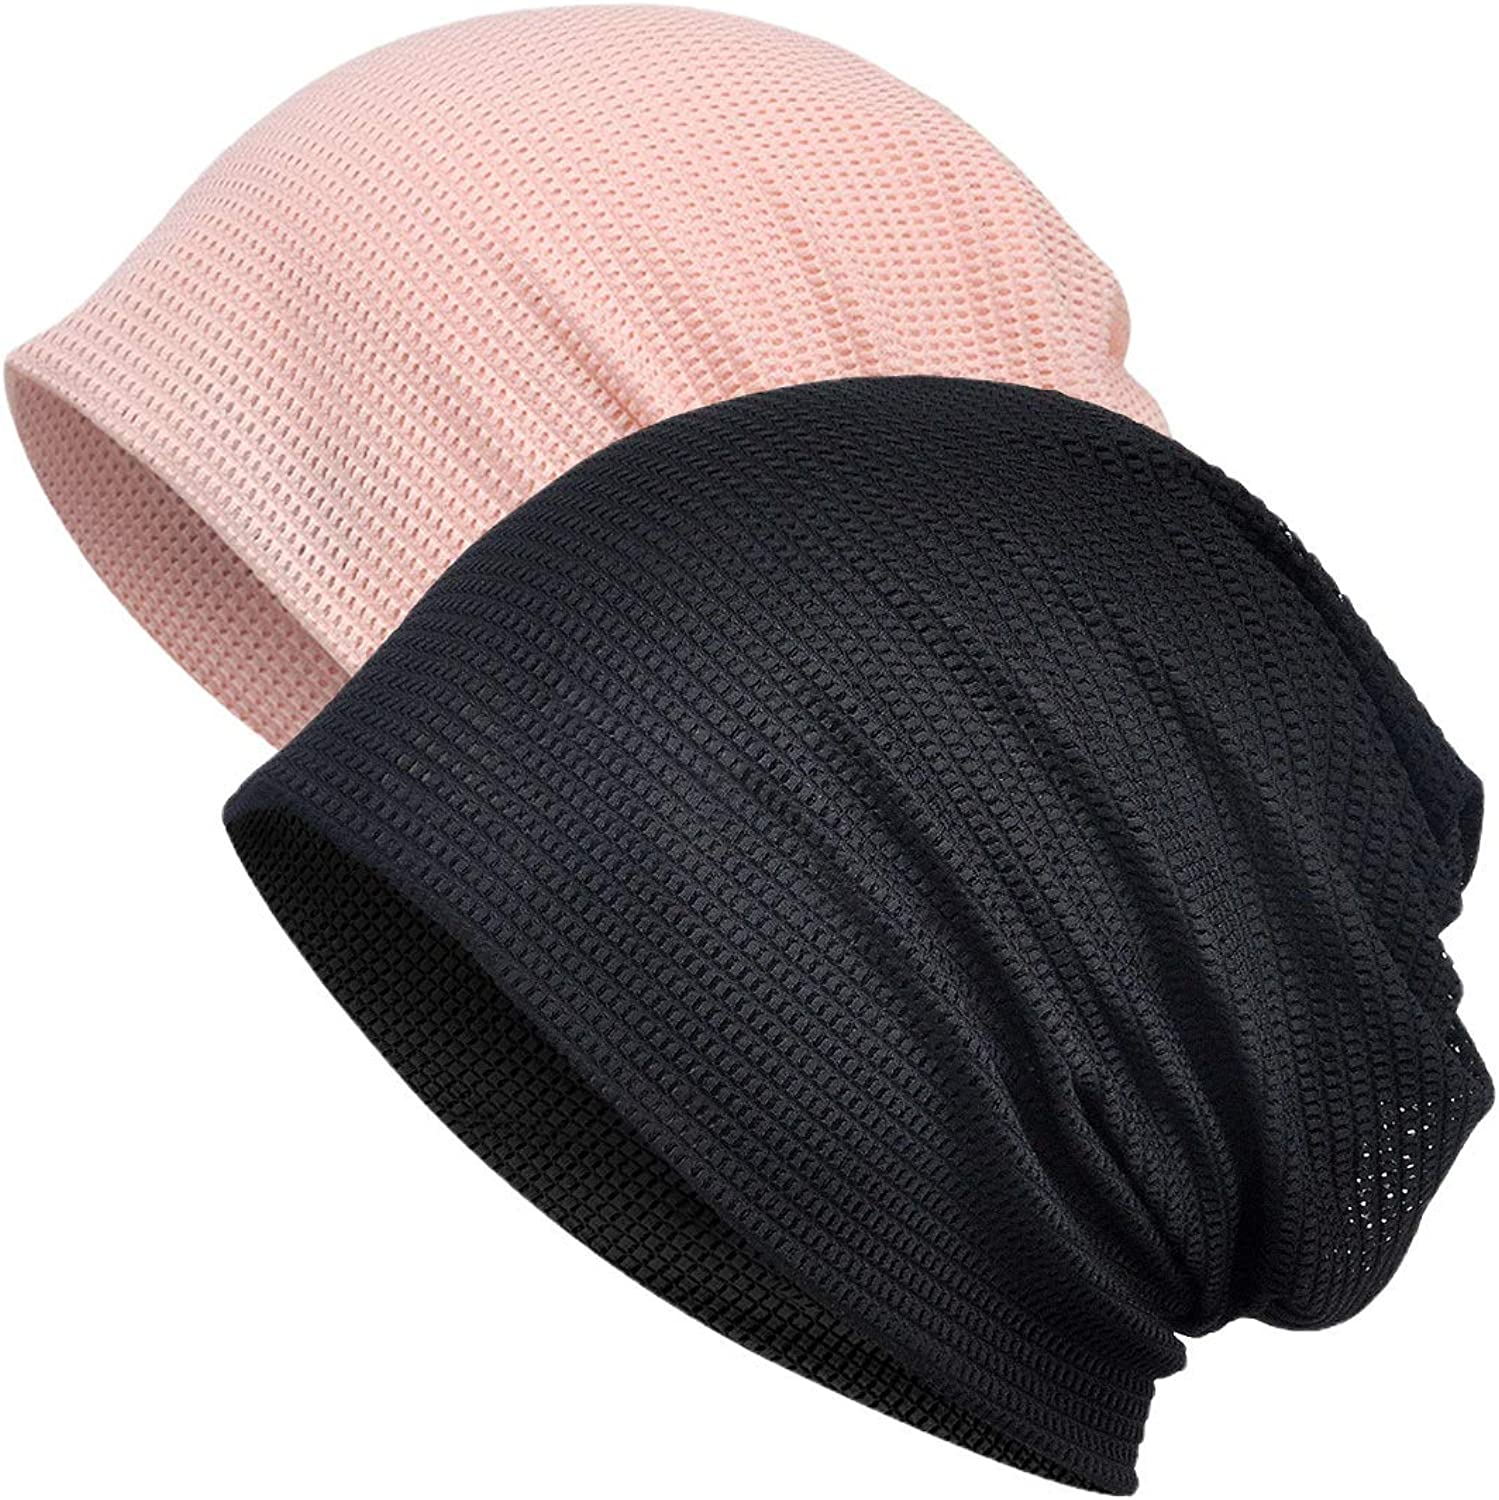 Yuzemumu Colorful Fashion Beanies Chemo Caps Cancer Headwear Skull Cap Knitted hat Scarf for Womens Mens (MZ013-2pack-A at  Women's Clothing store